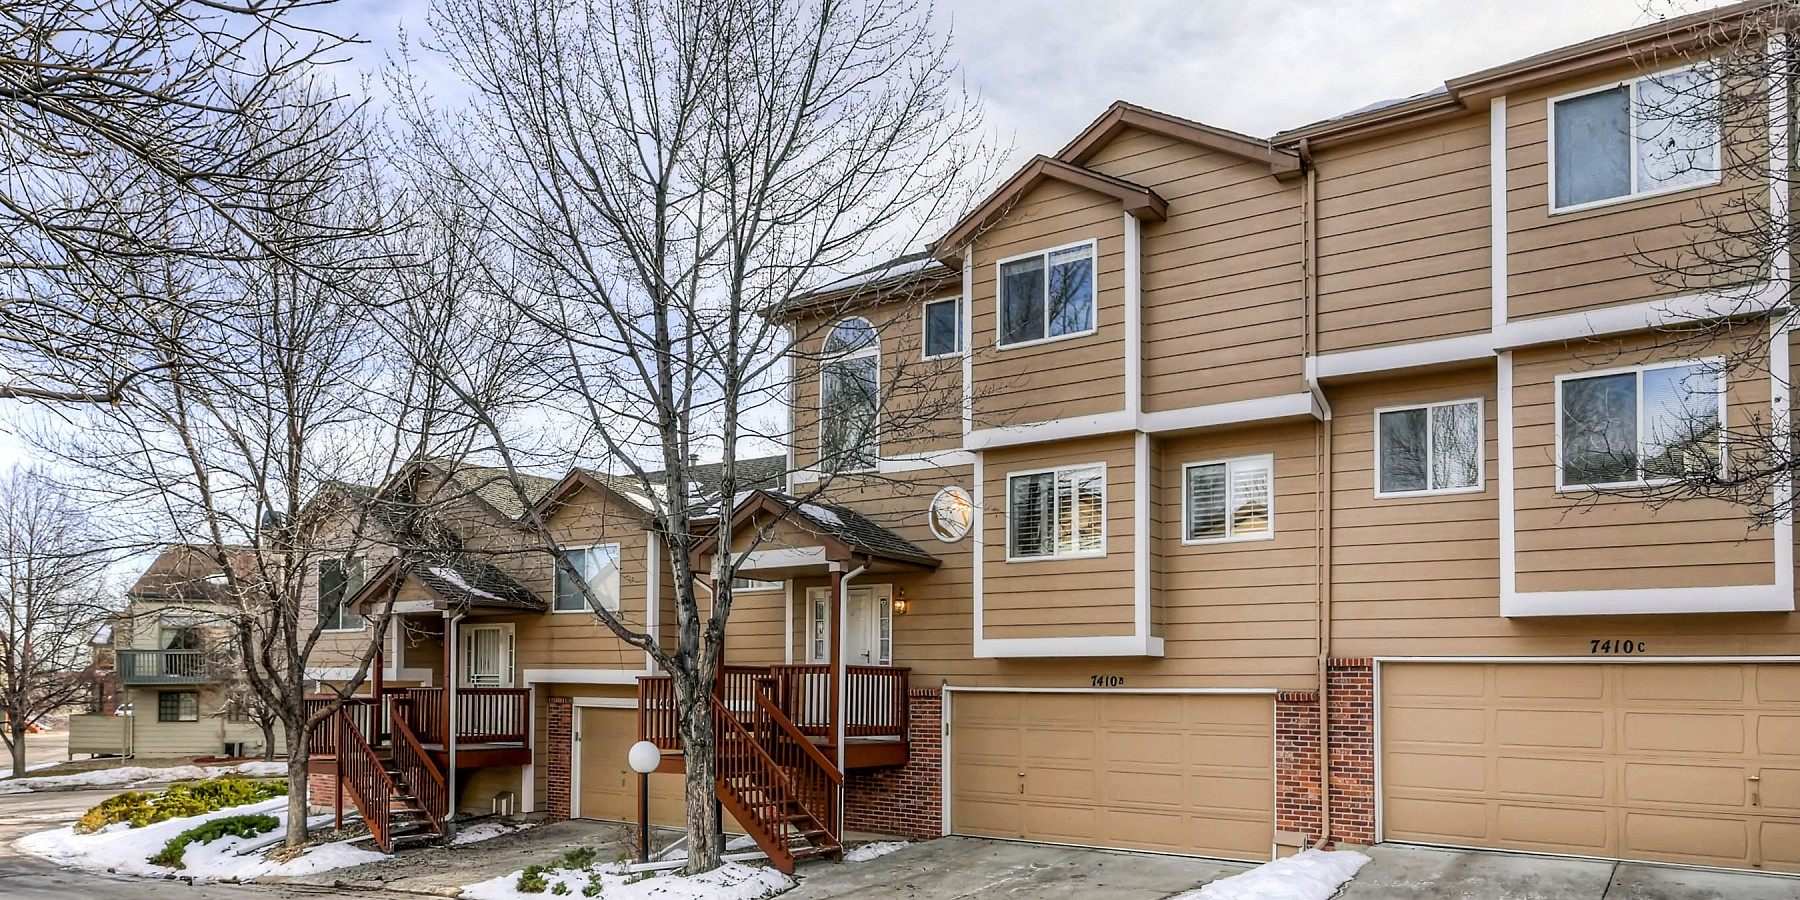 7410 West Coal Mine Avenue #B, Littleton, CO 80123